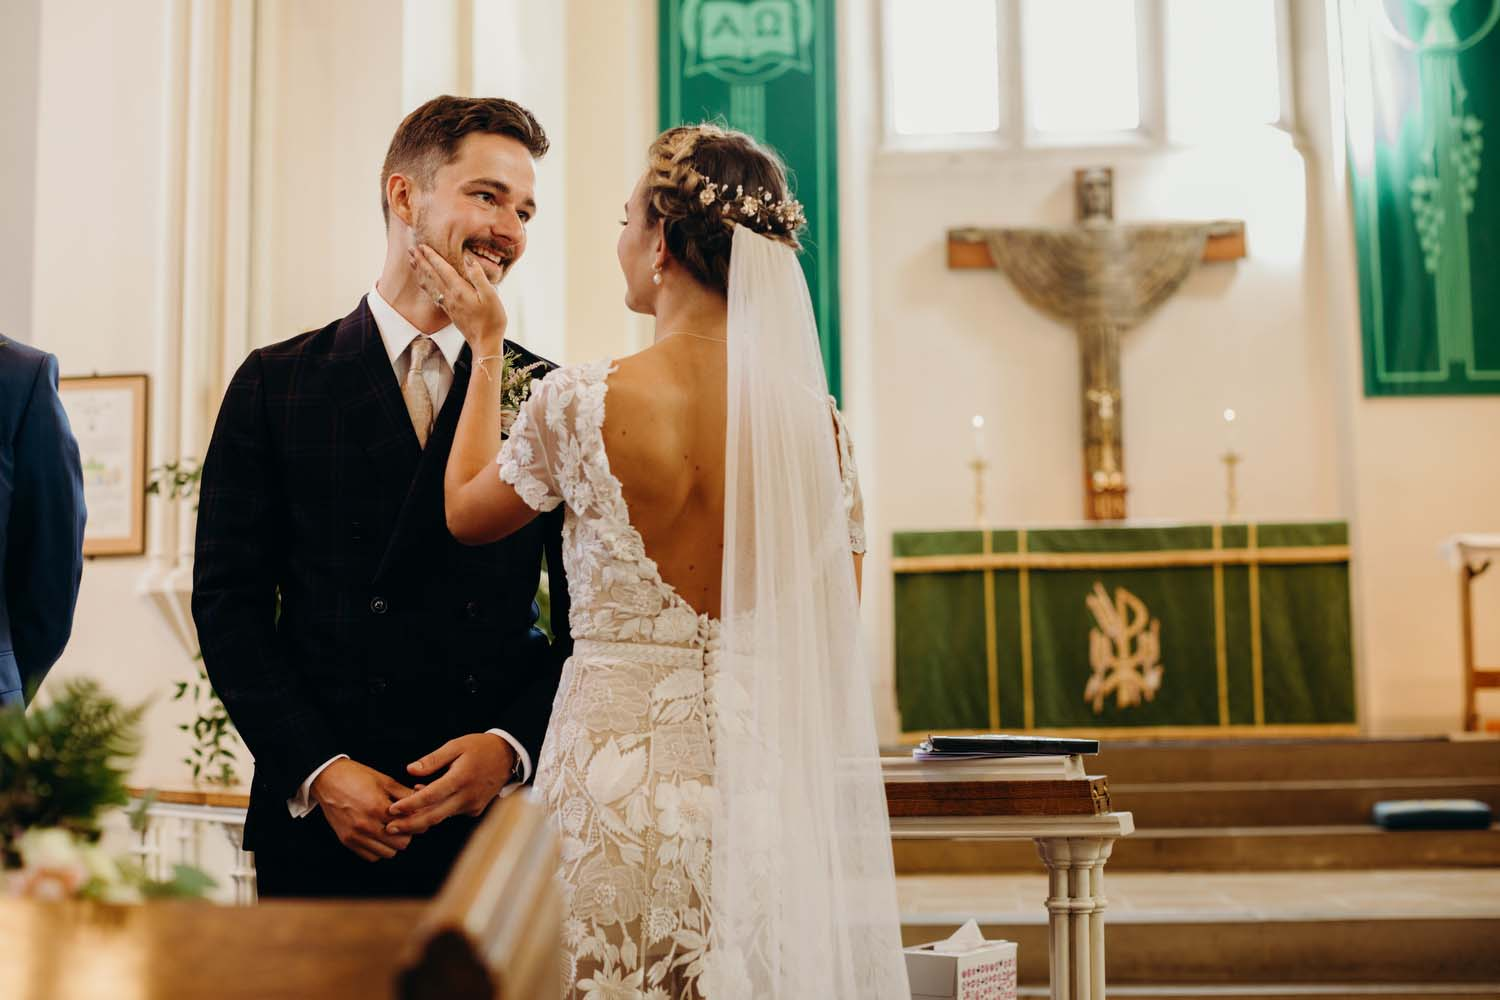 Bride puts hand on smiling grooms face